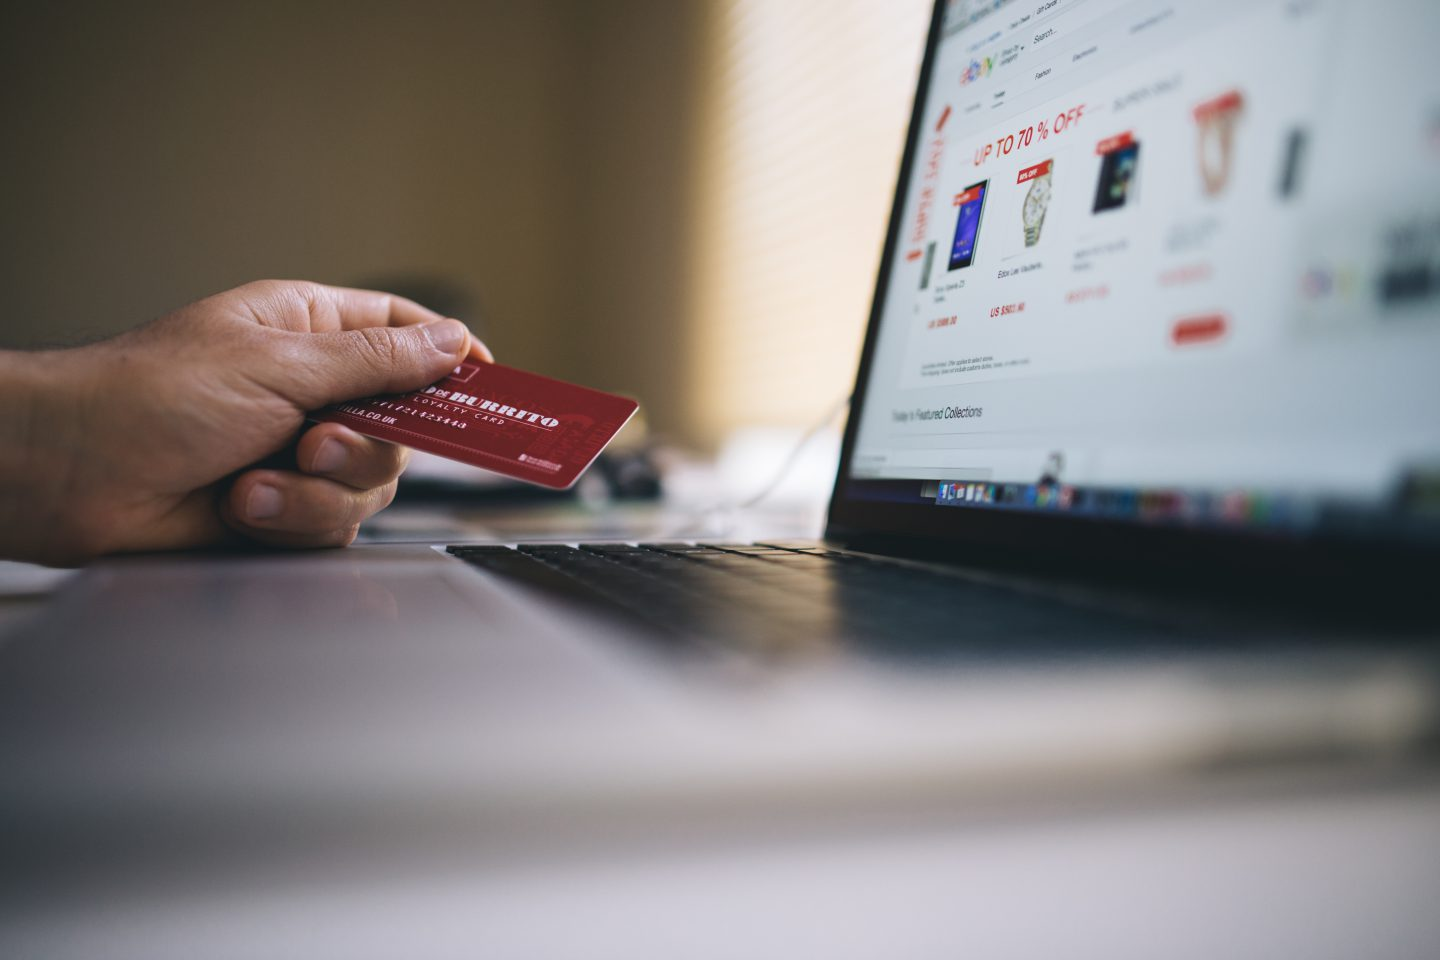 laptop with person holding credit card